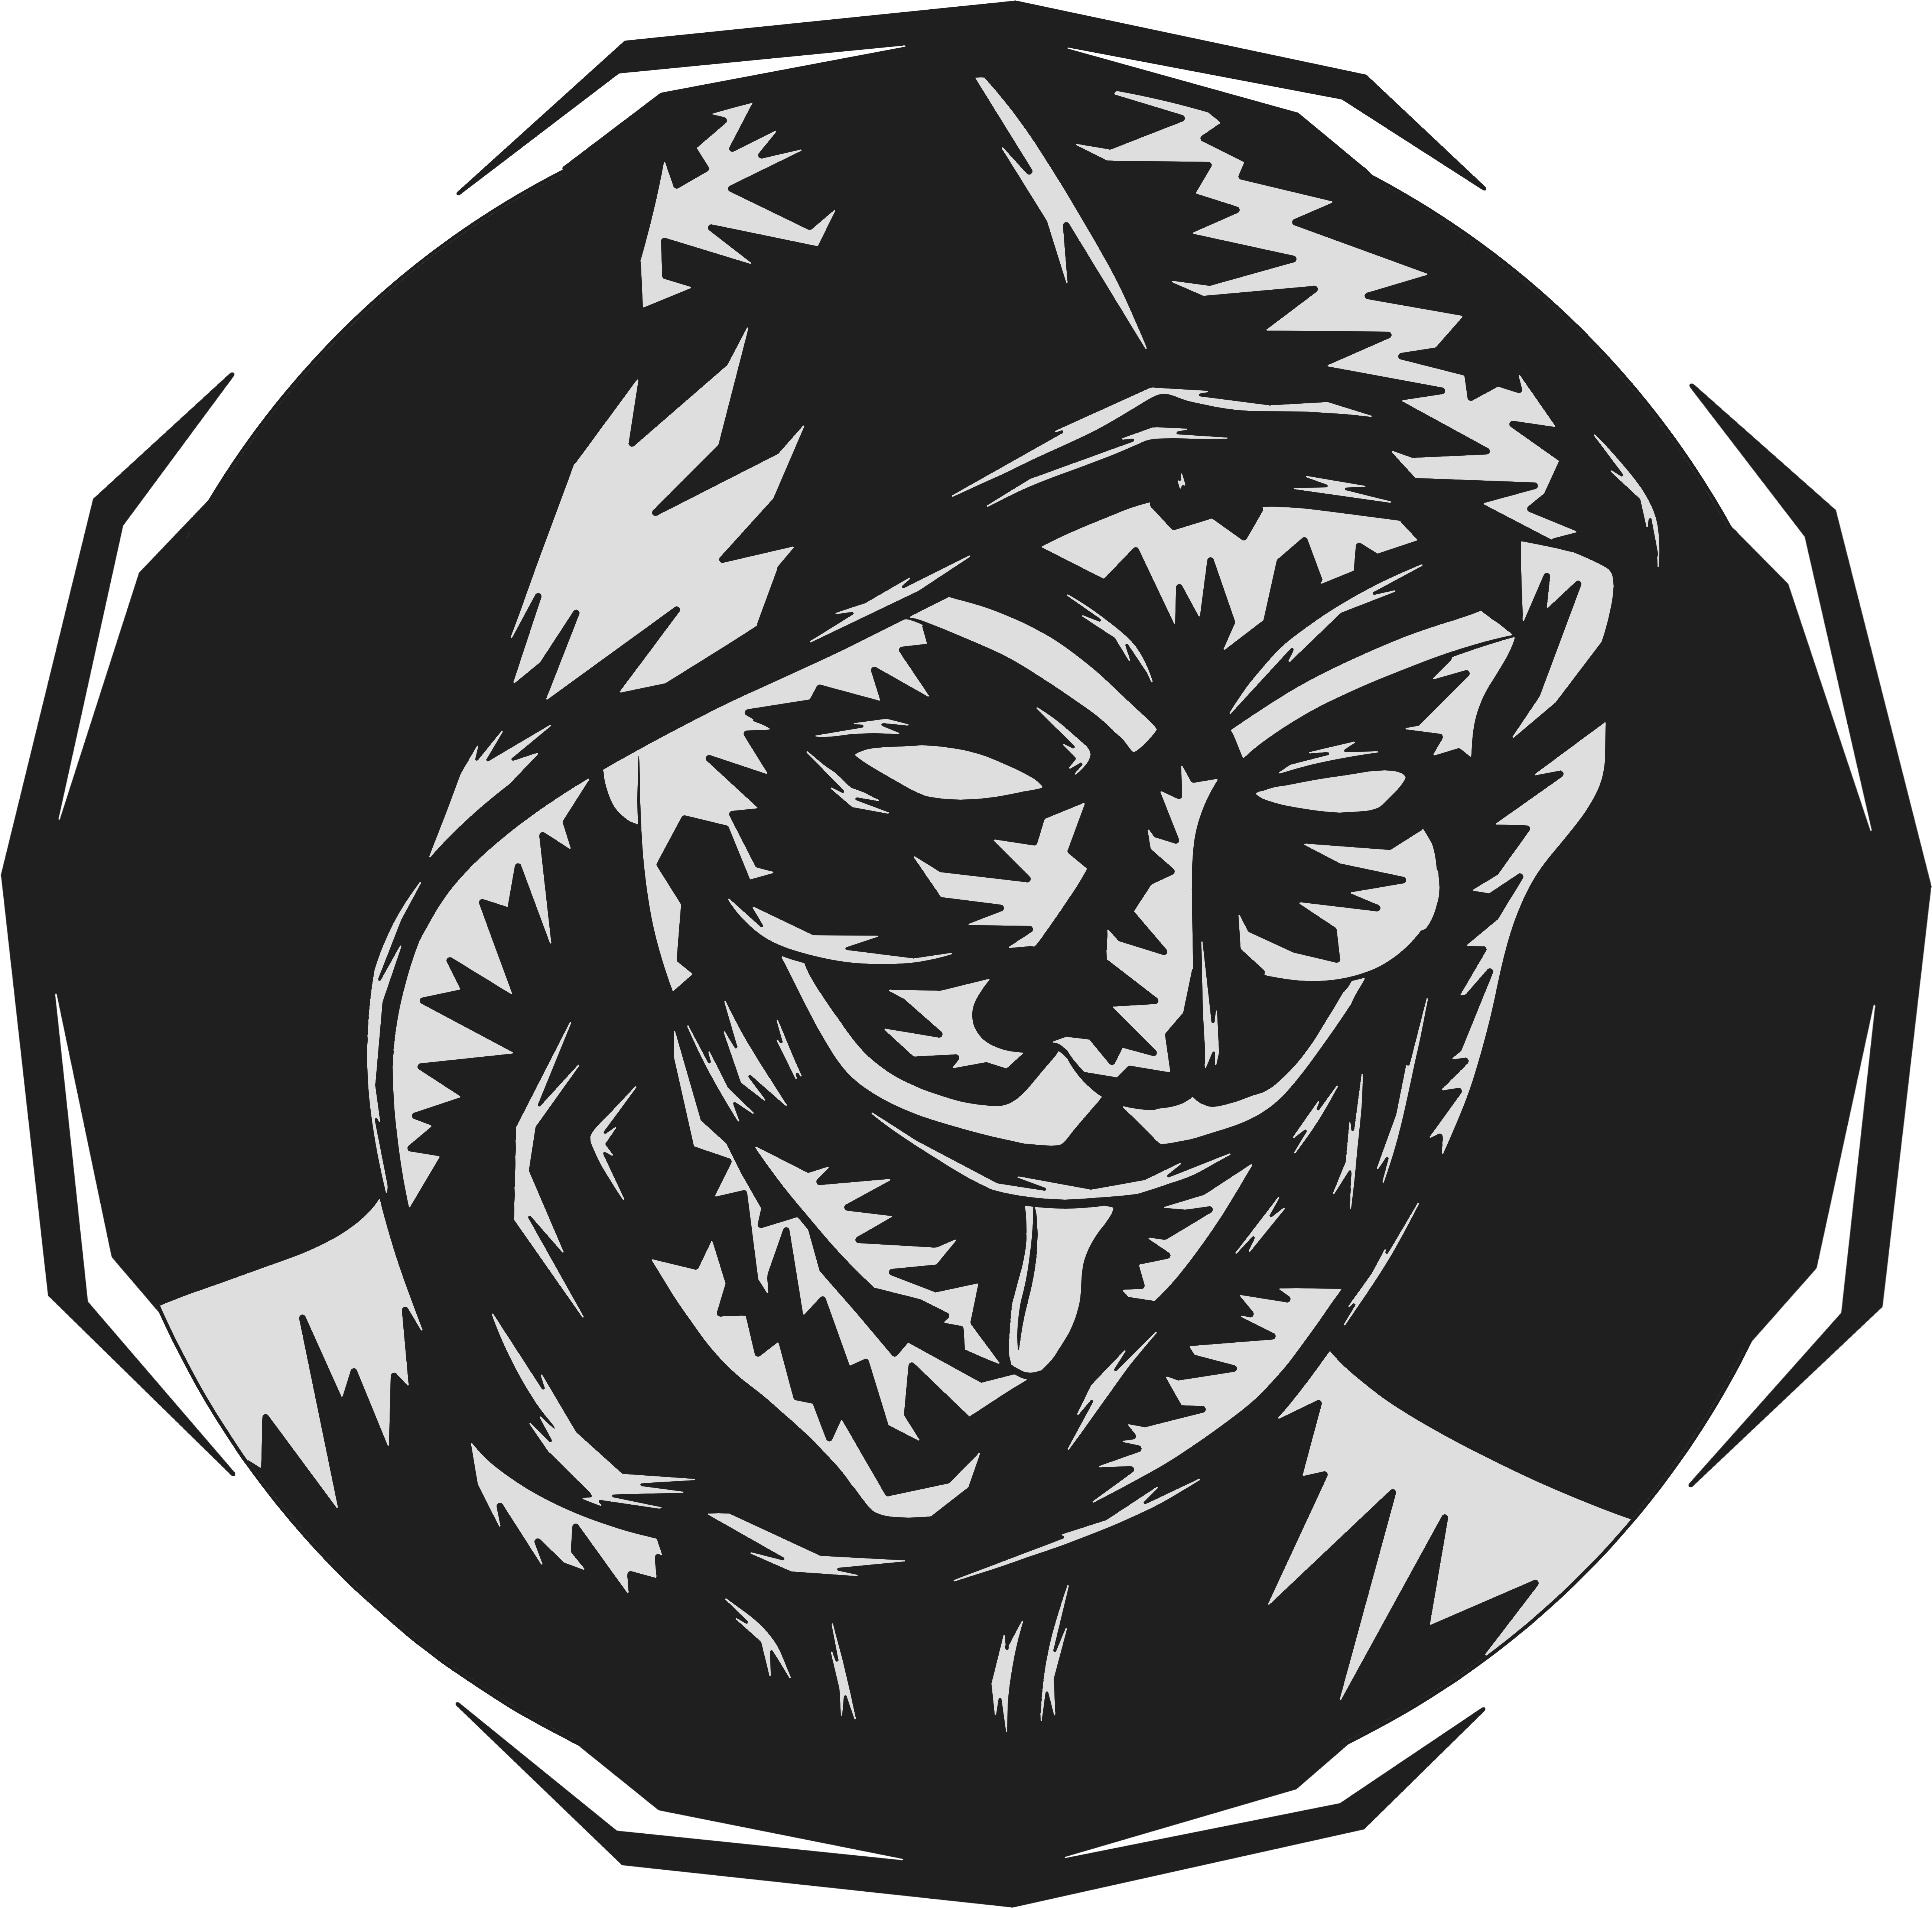 HD Guy Fawkes Mask/anonymous Design , Png Download.